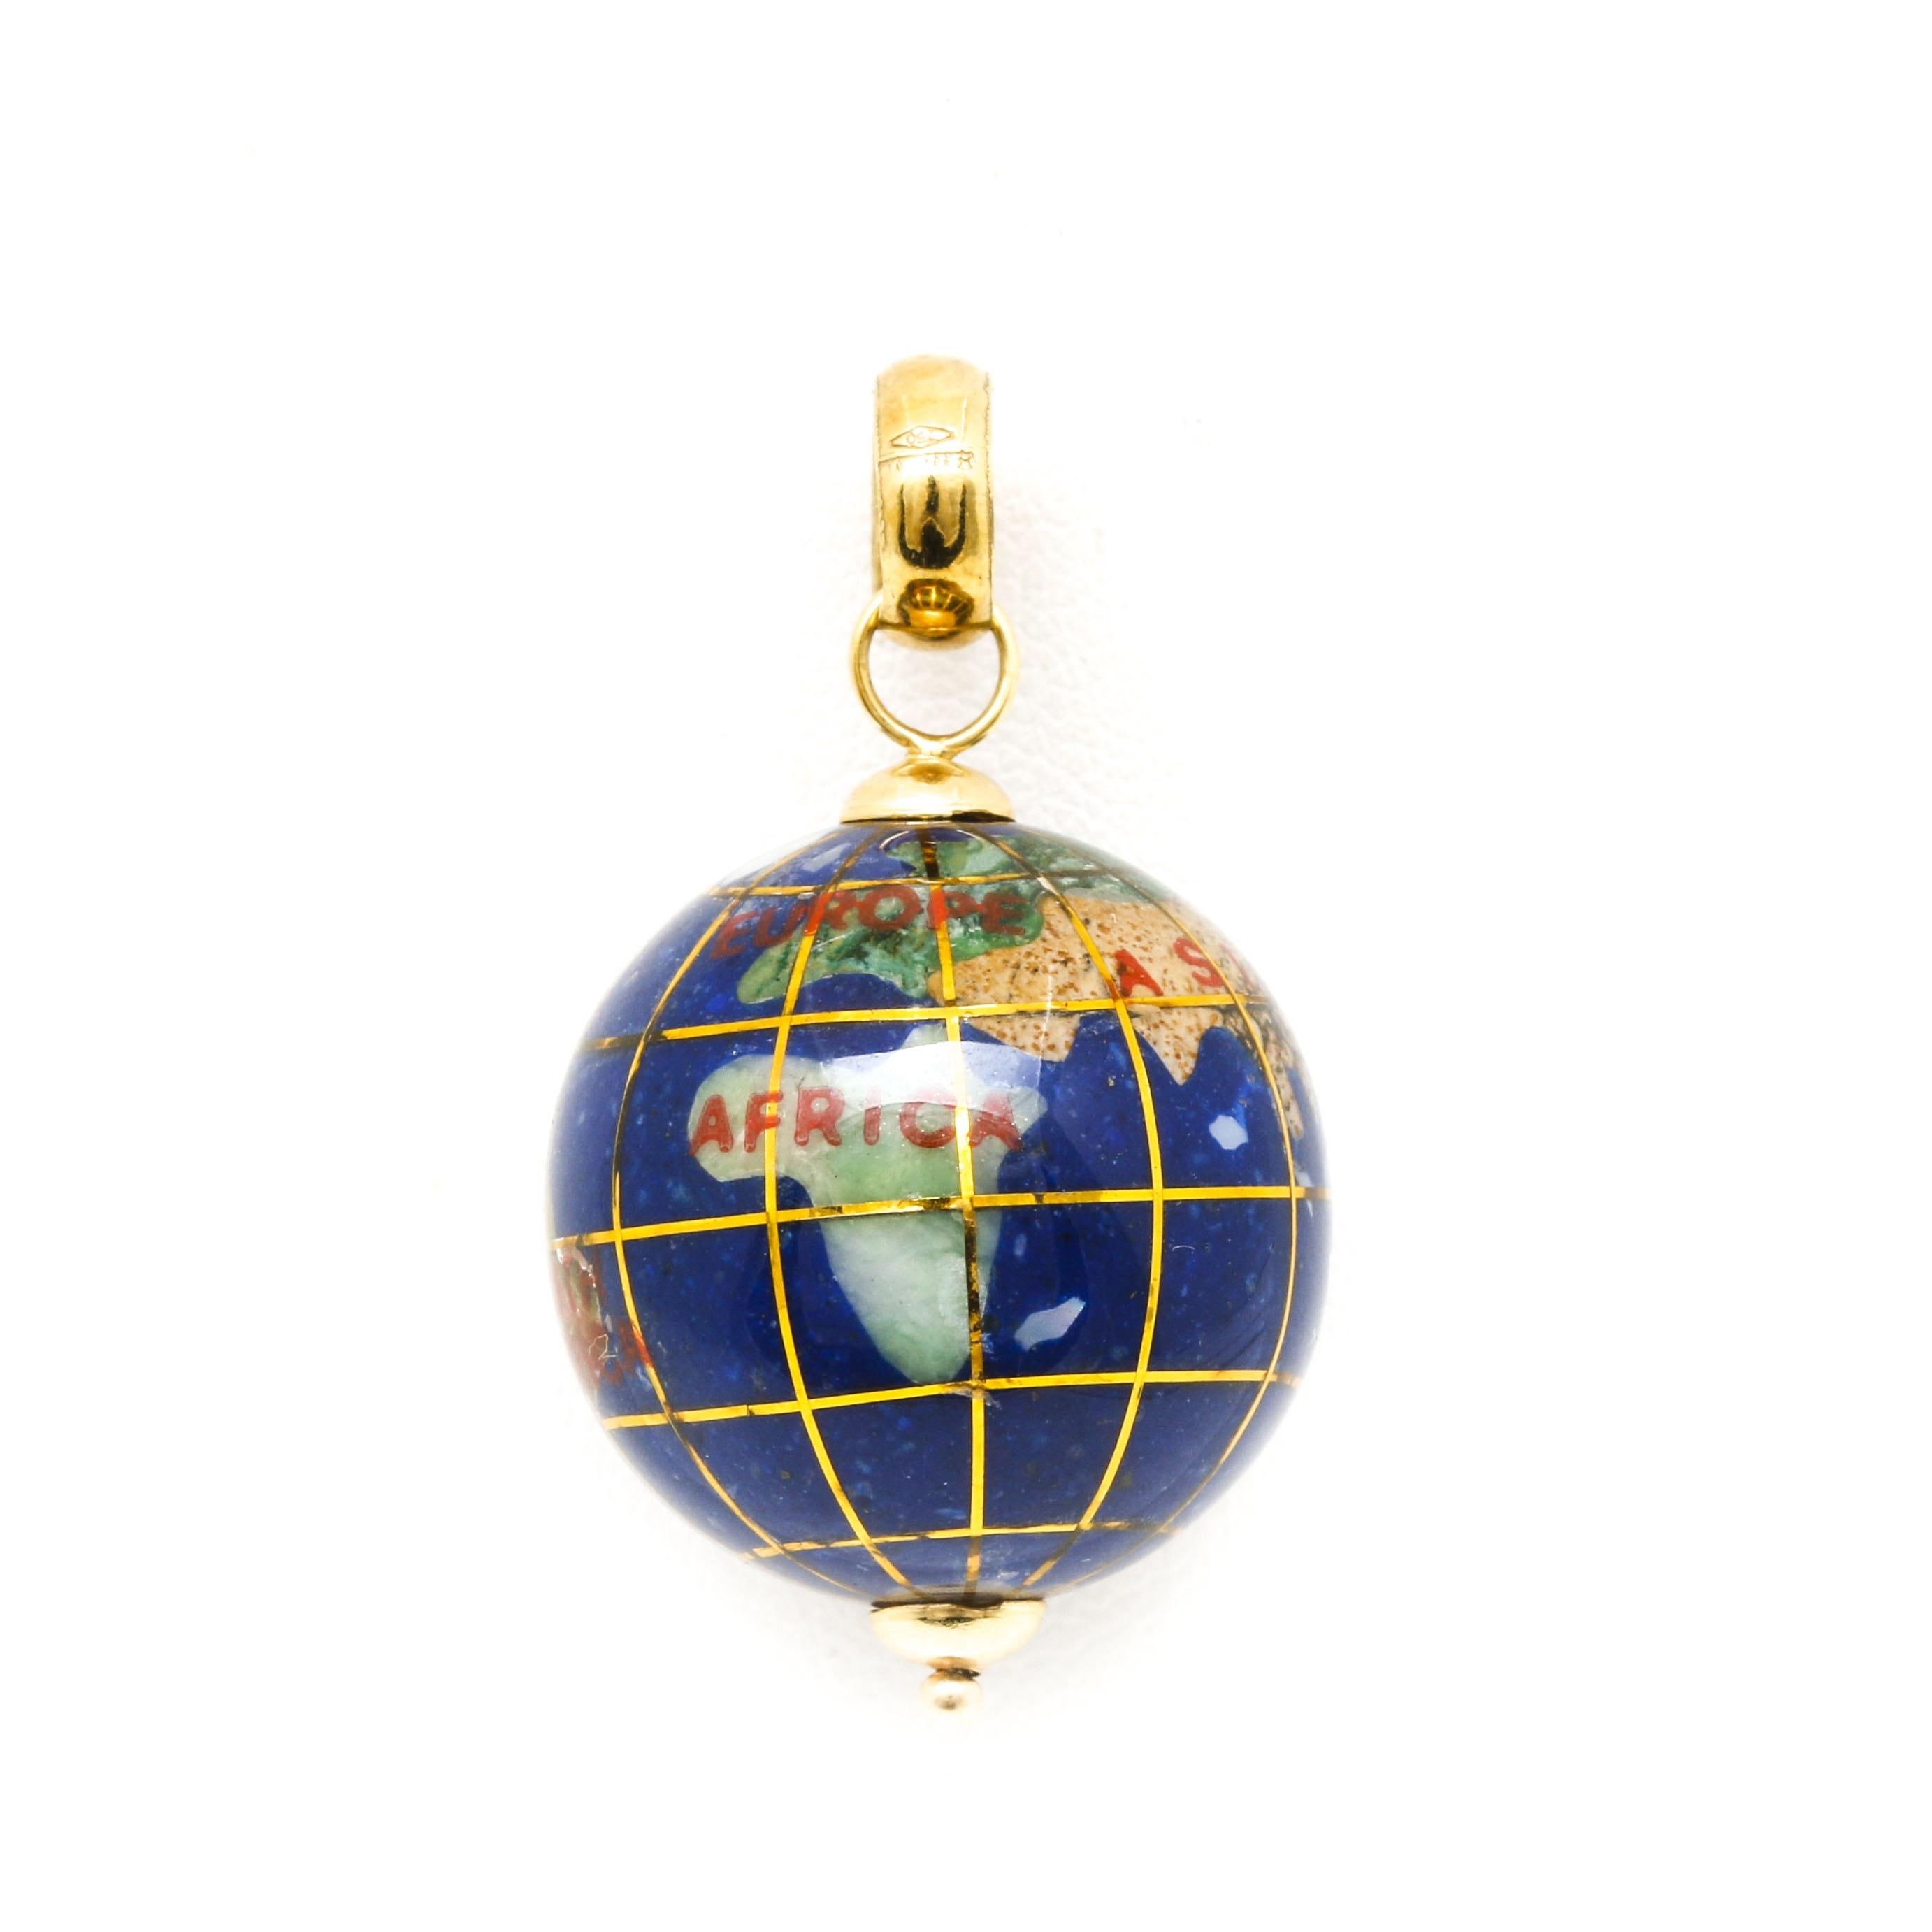 18K Yellow Gold Globe Charm With Stone Inlay Including Abalone